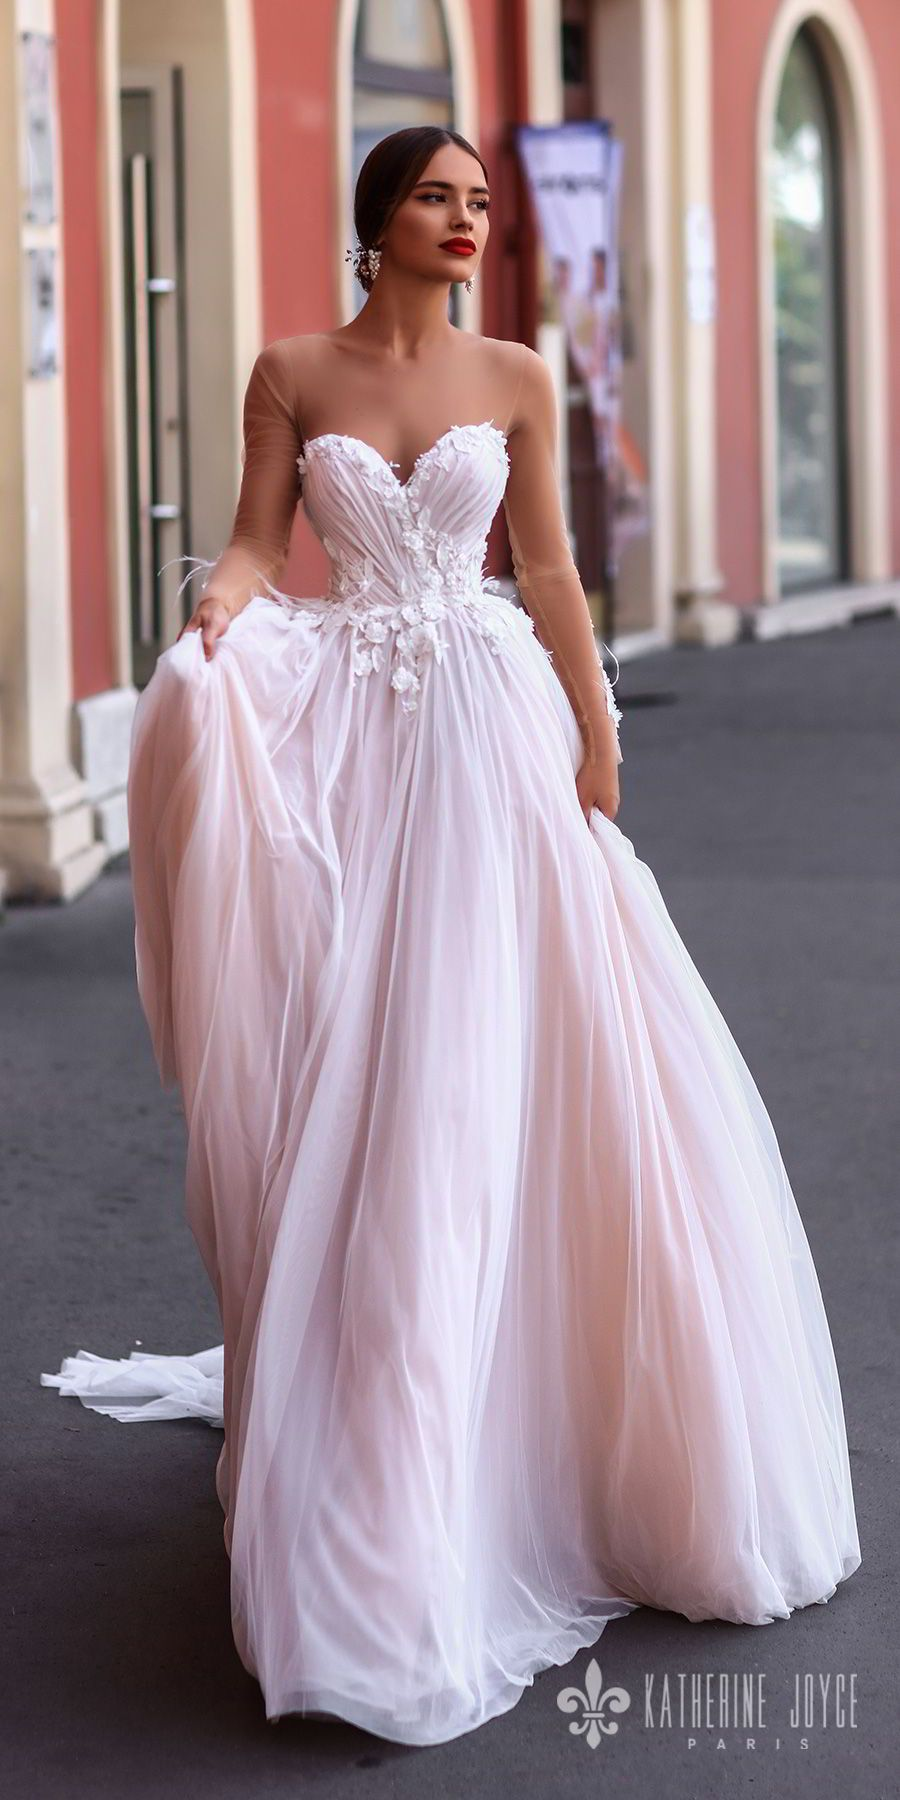 Katherine joyce wedding dresses u ucma cherieud bridal collection